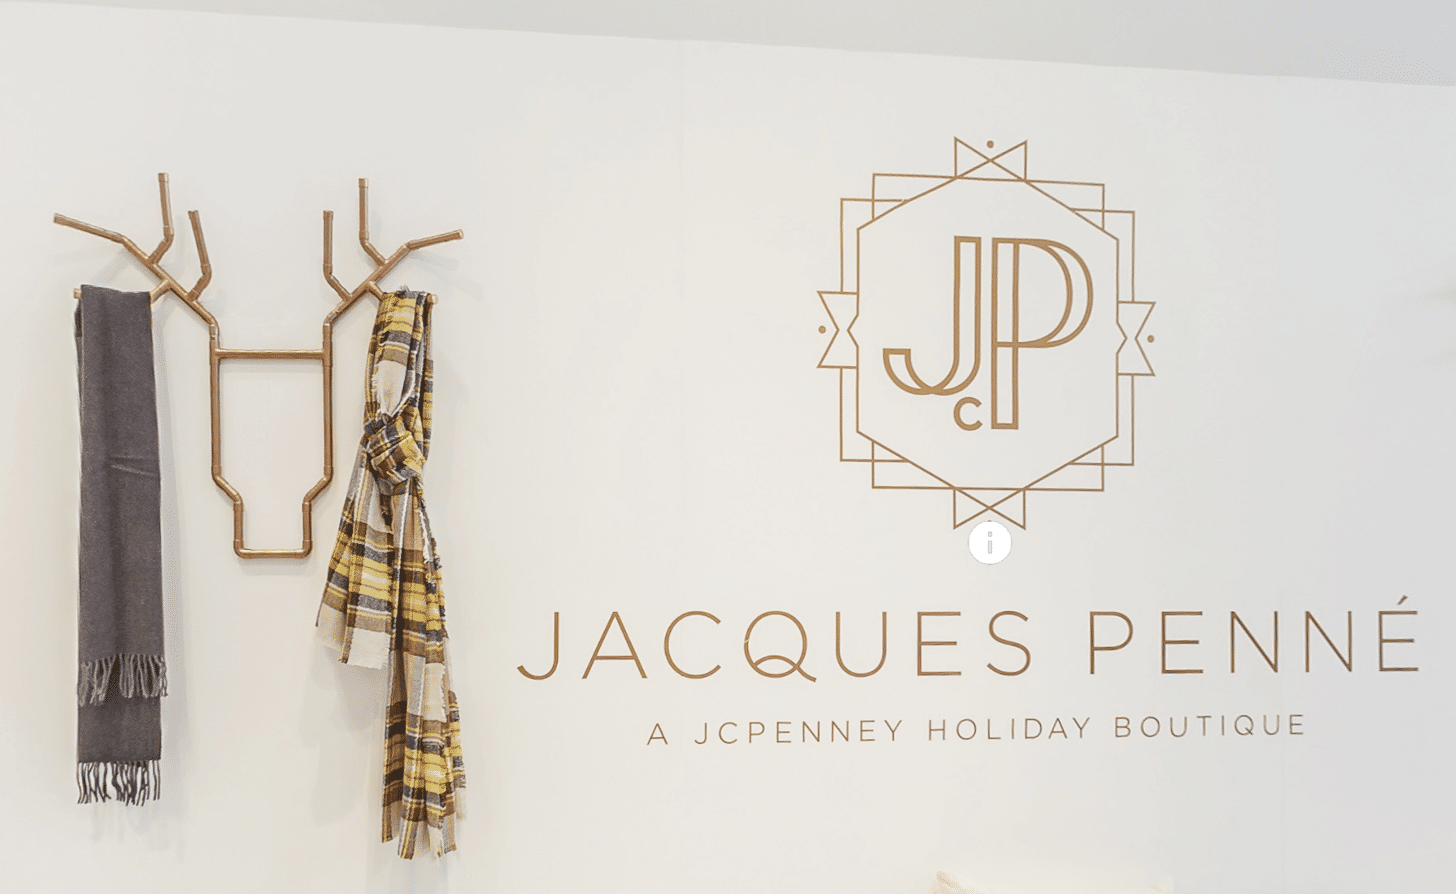 Looking aimlessly for Hot Holiday Shopping Deals? Head out to JCPenney and get all the gifts you need for less than you think.